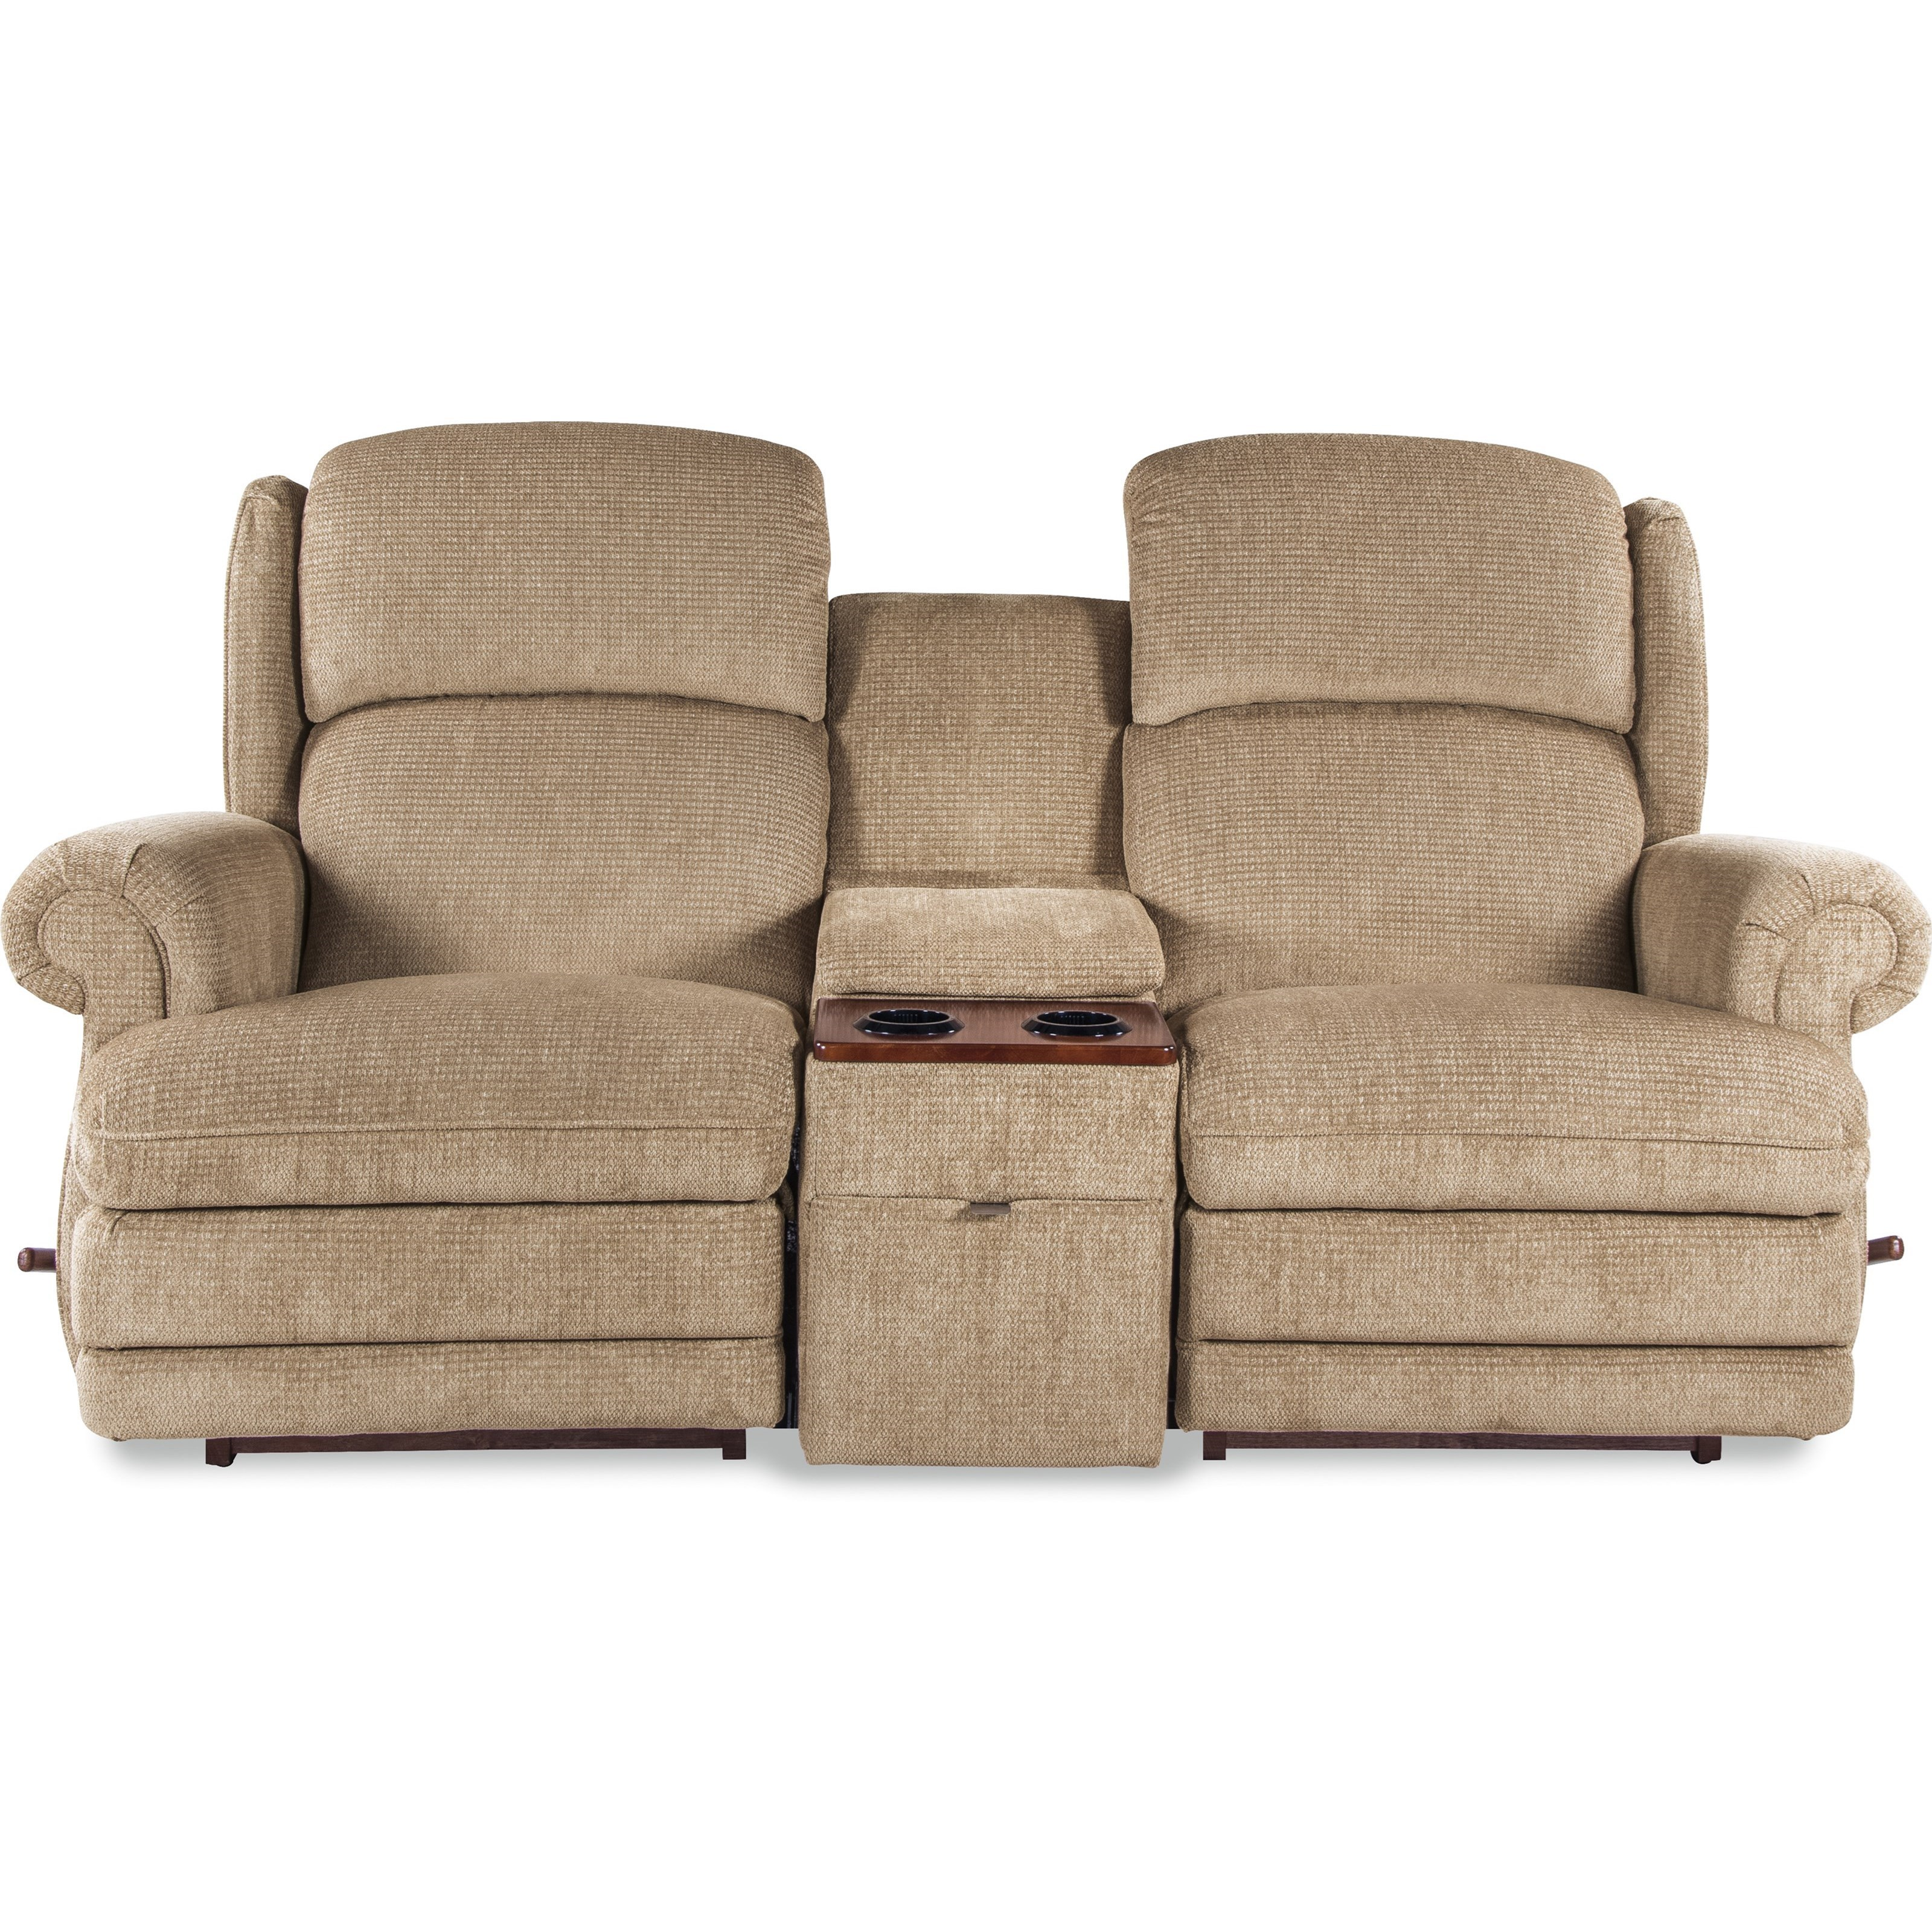 Loveseat Shown May Not Represent Features Indicated  sc 1 st  Novello Furniture & La-Z-Boy Kirkwood Three Power-Recline-XR Reclining Loveseat with ... islam-shia.org